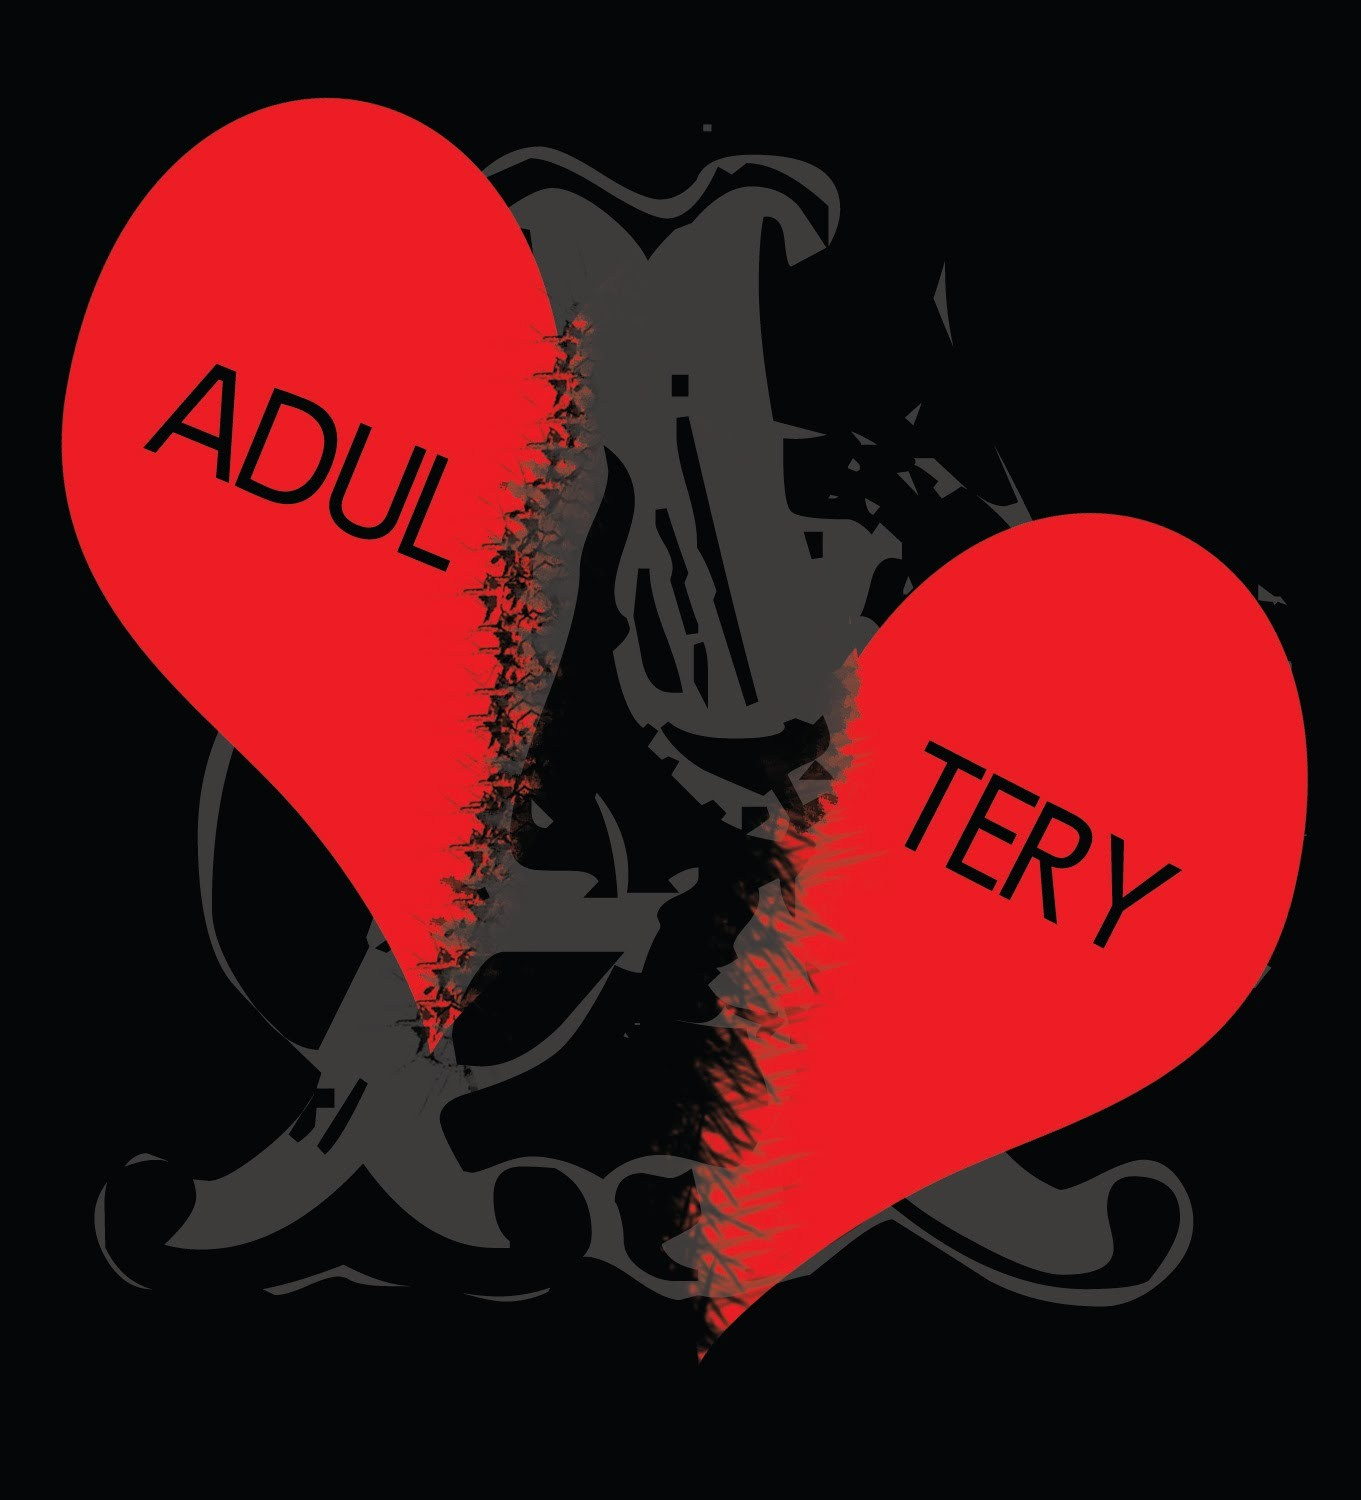 Adultery case comment